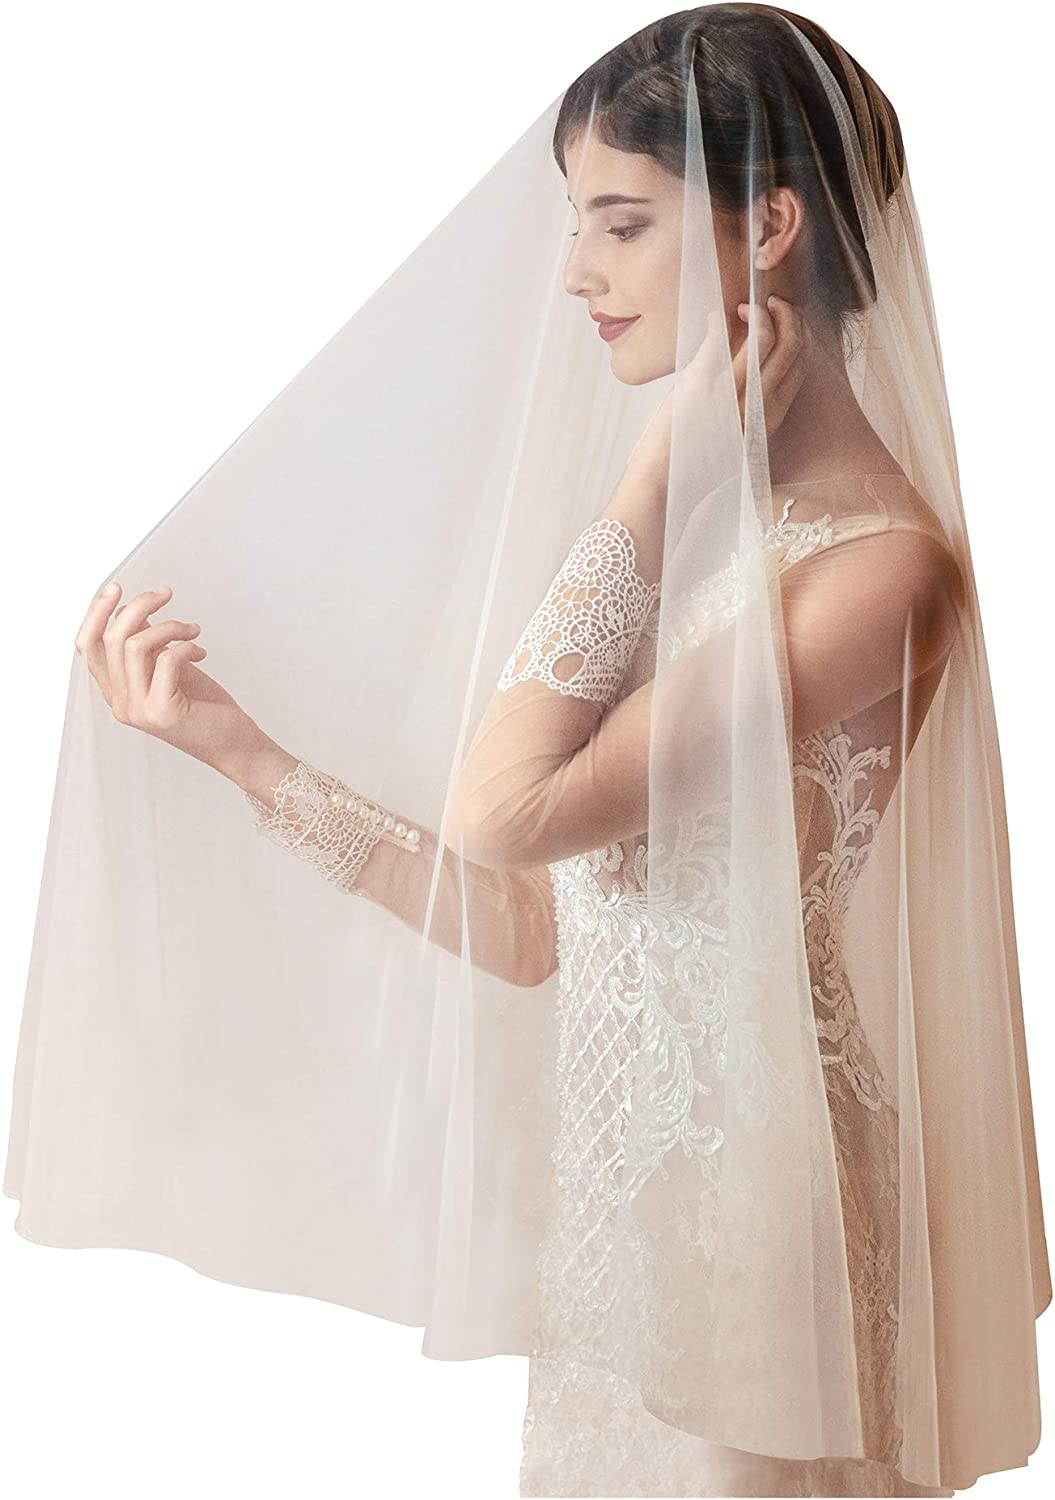 White Jasmine Short Champagne Wedding Veil for Brides with Blusher, Elbow Fingertip Lengths, Simple Raw Cut Edge